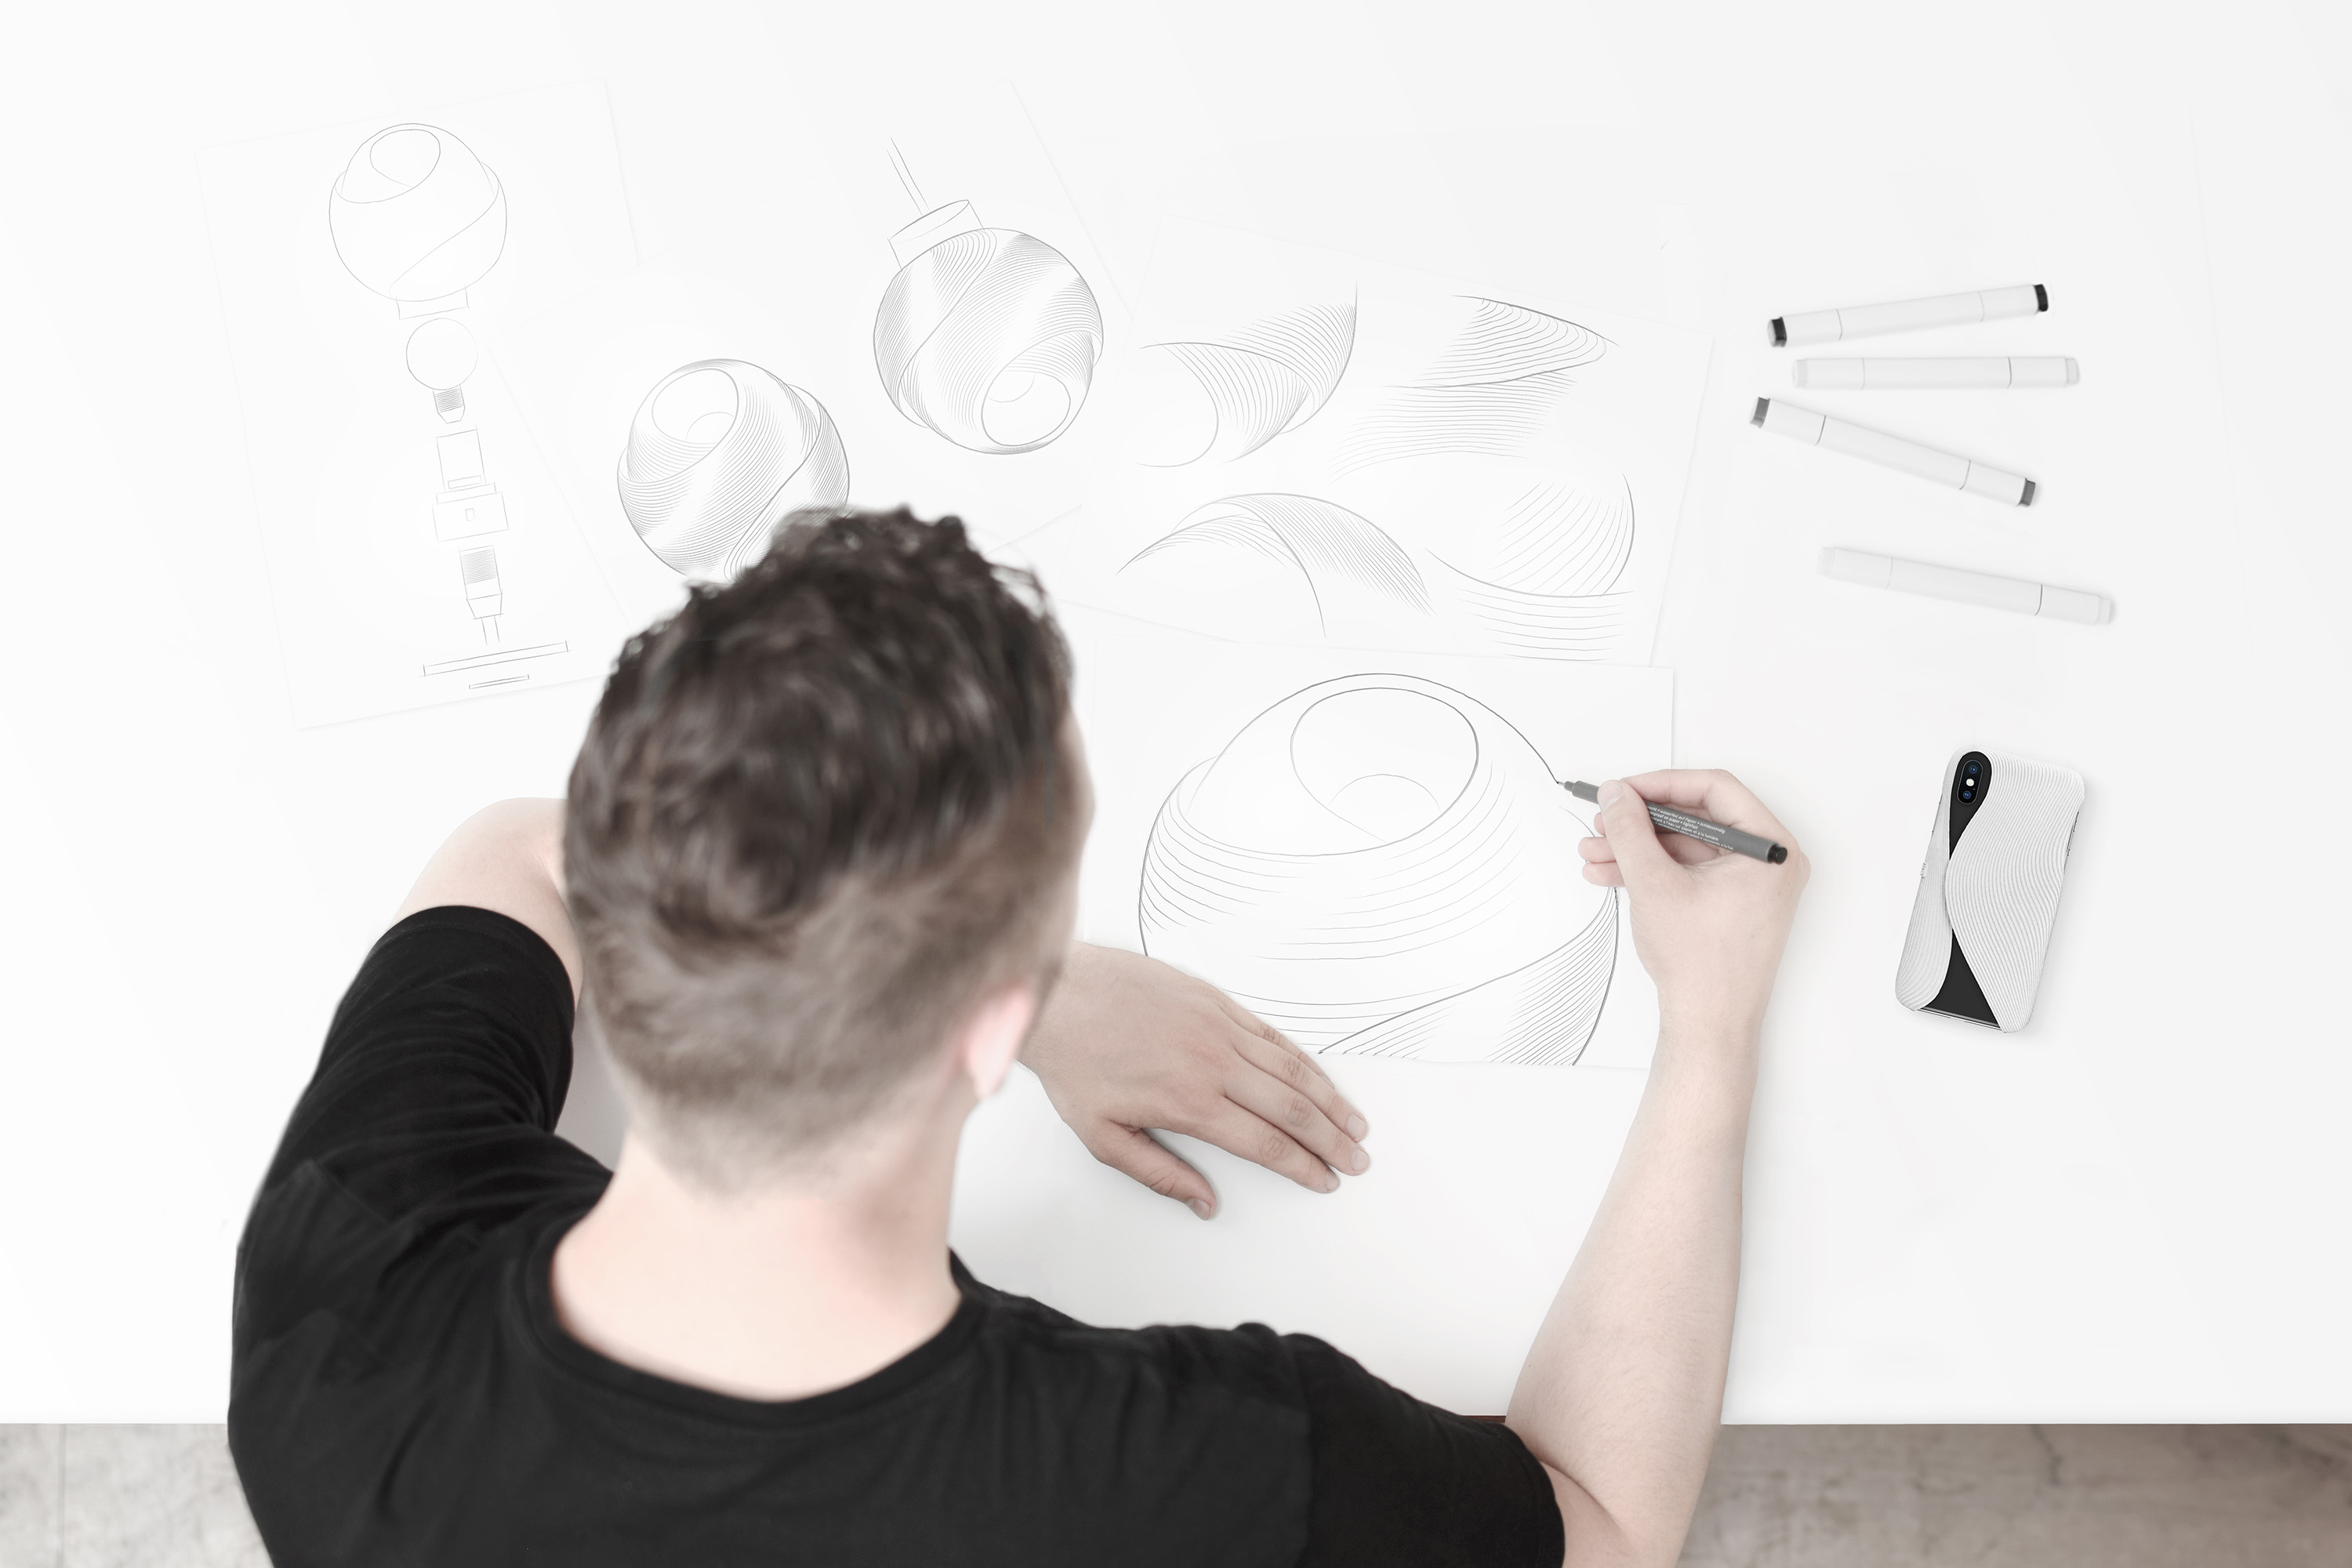 Fold Lamp Design Sketches by Matthijs Kok